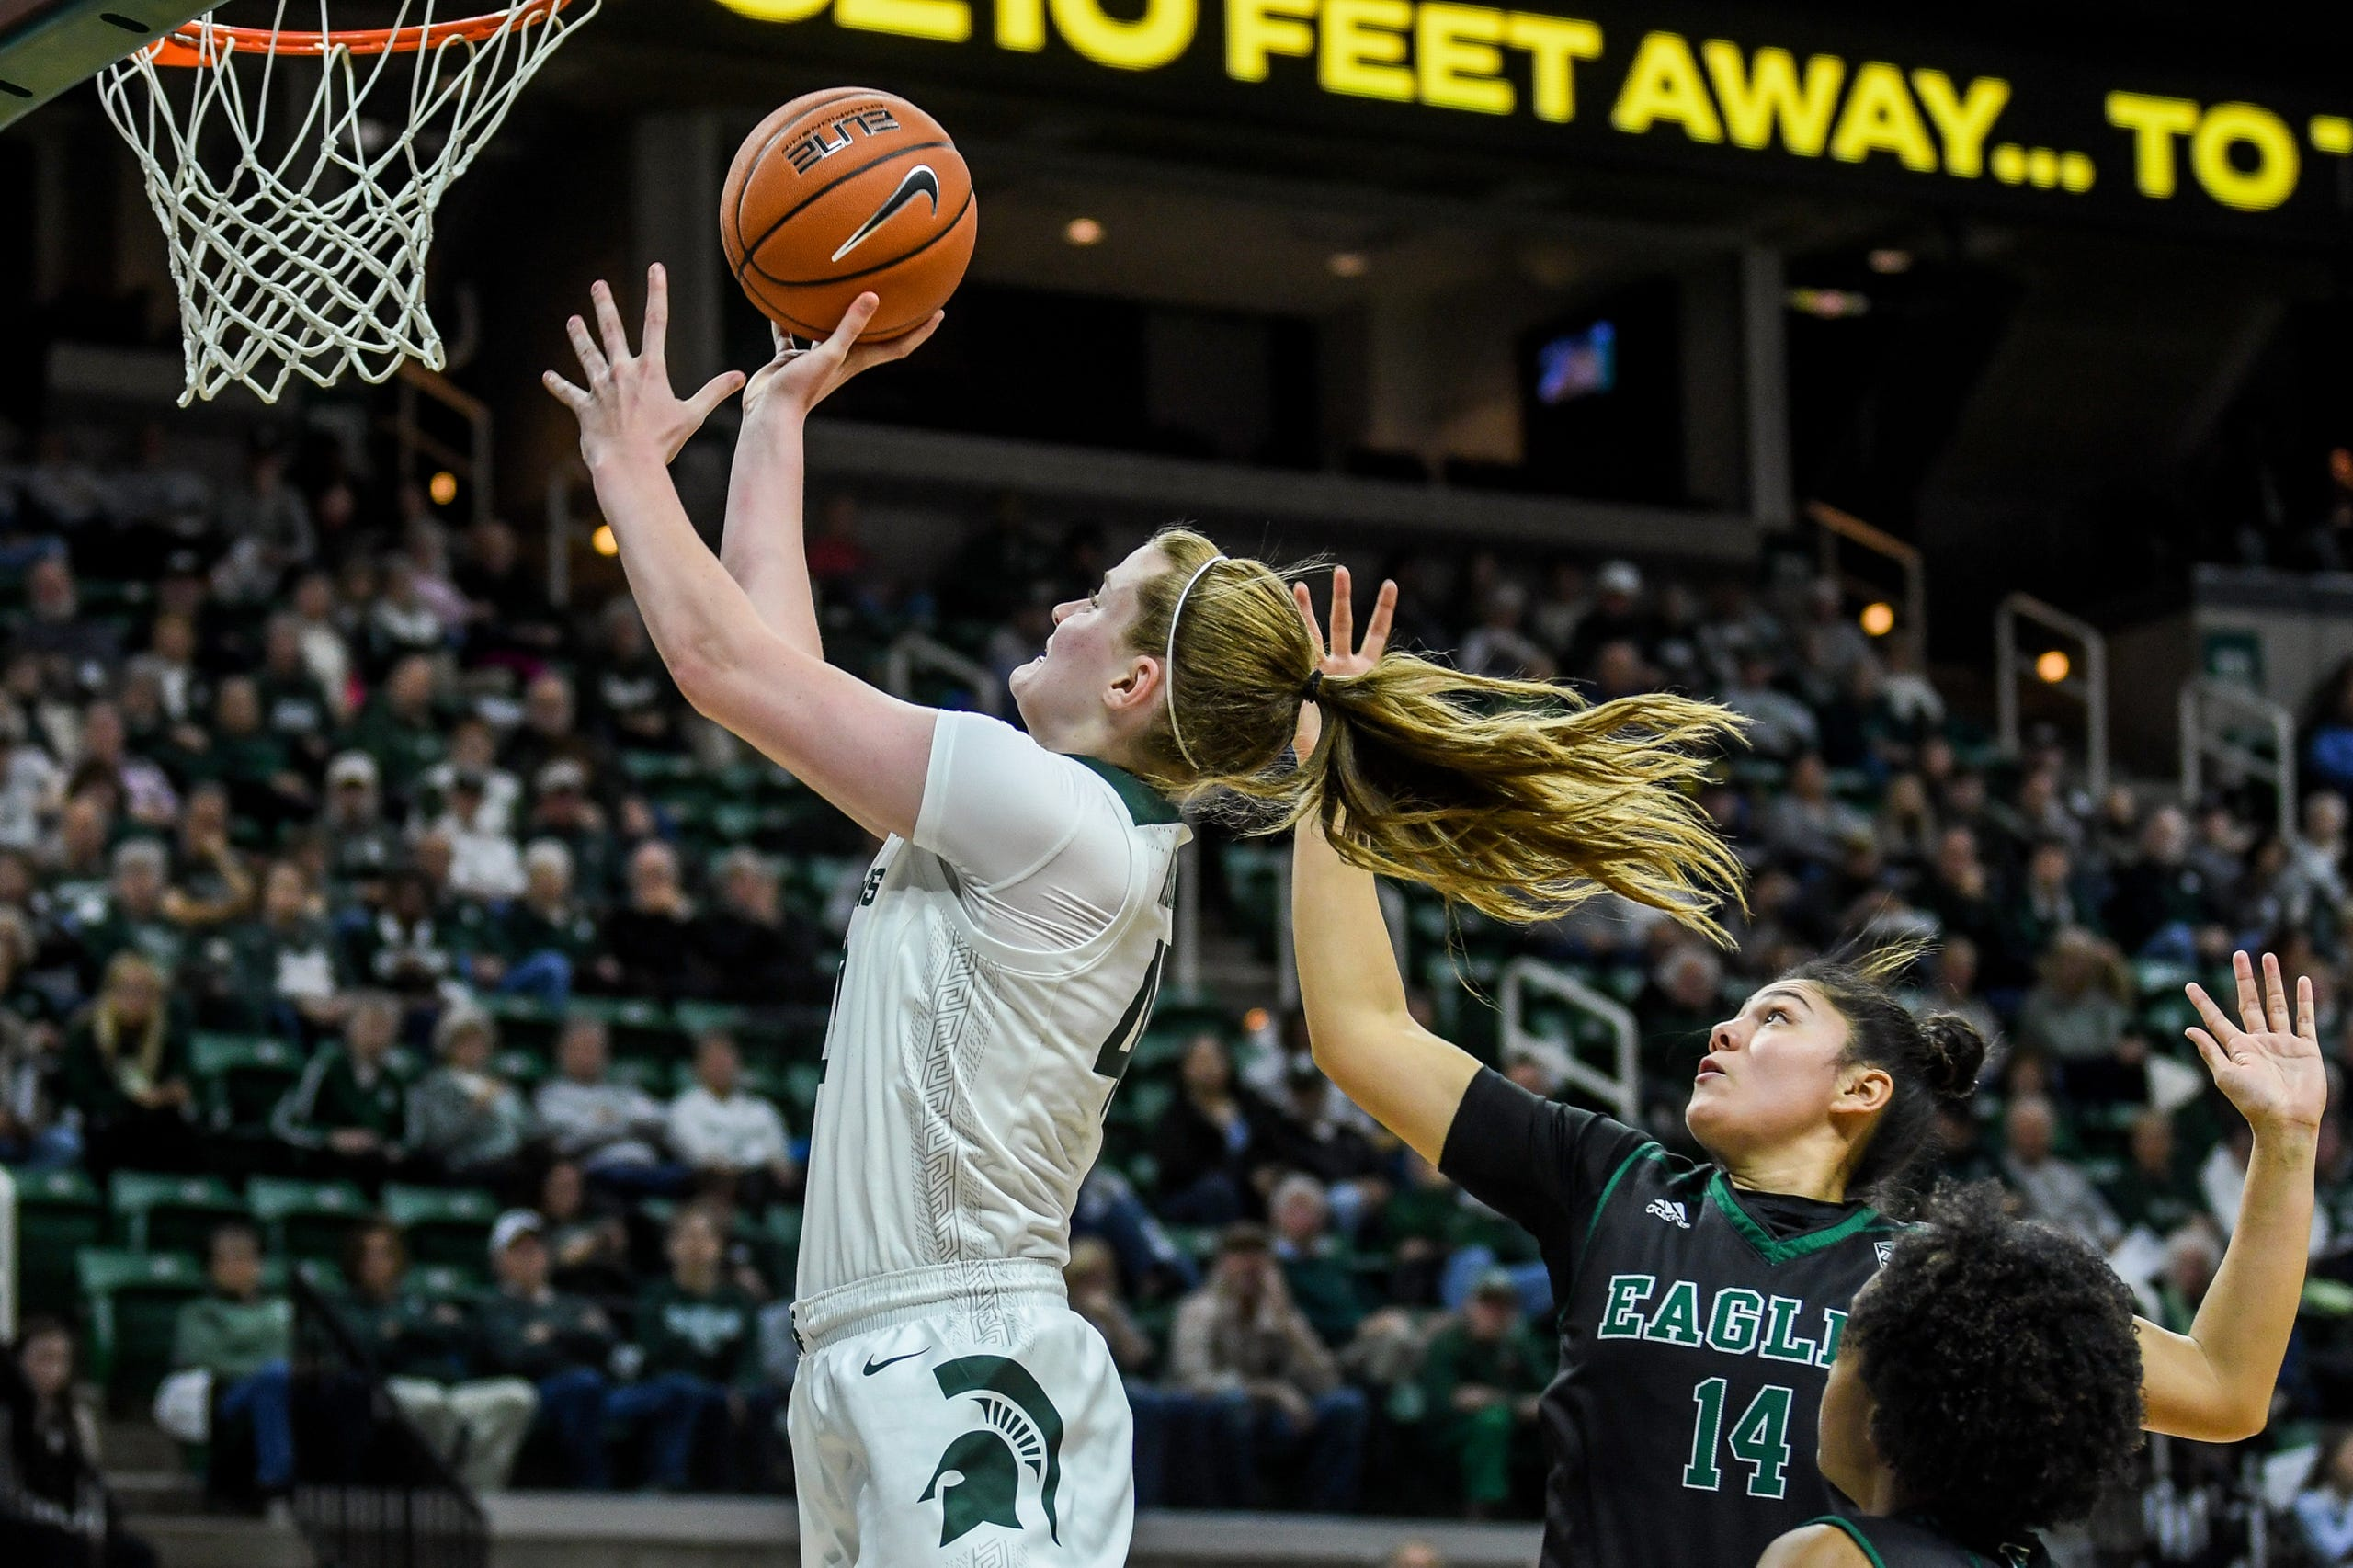 Michigan State's Julia Ayrault, left, scores as Eastern Michigan's Natalia Pineda defends during the second quarter on Tuesday, Nov. 5, 2019, at the Breslin Center in East Lansing.